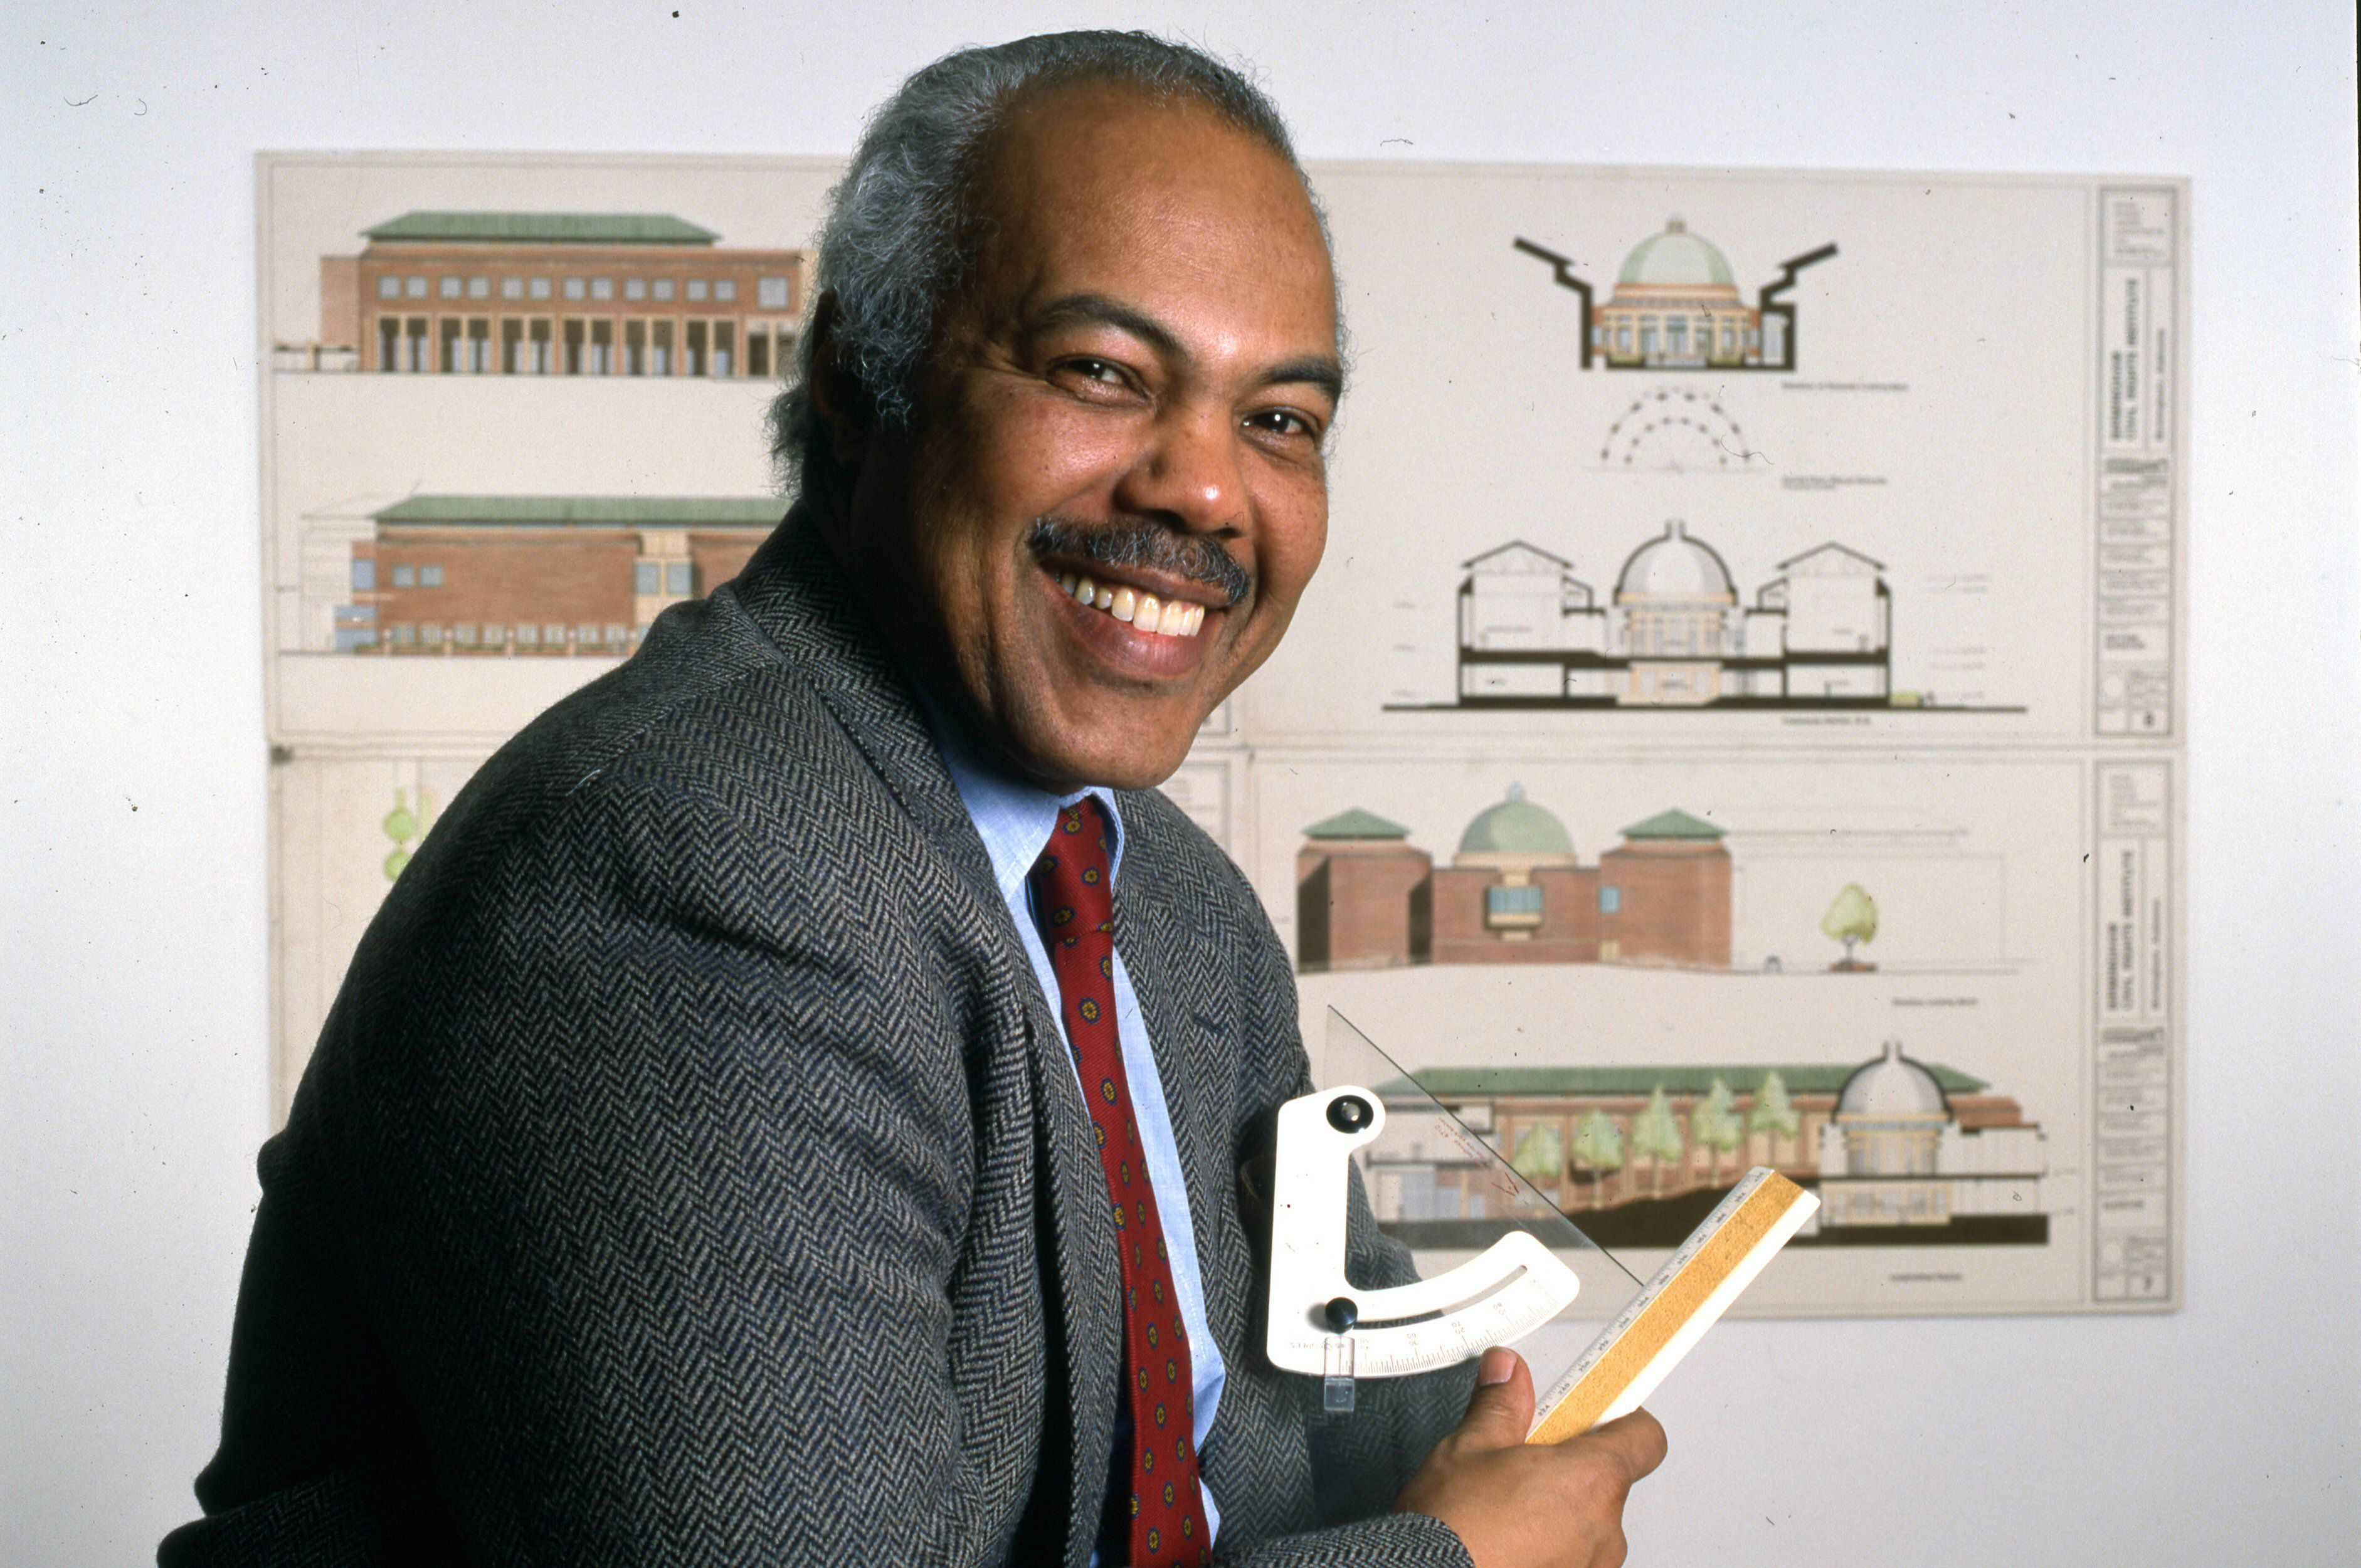 Black man in suit, smiling, posing with architecture sketches and tools